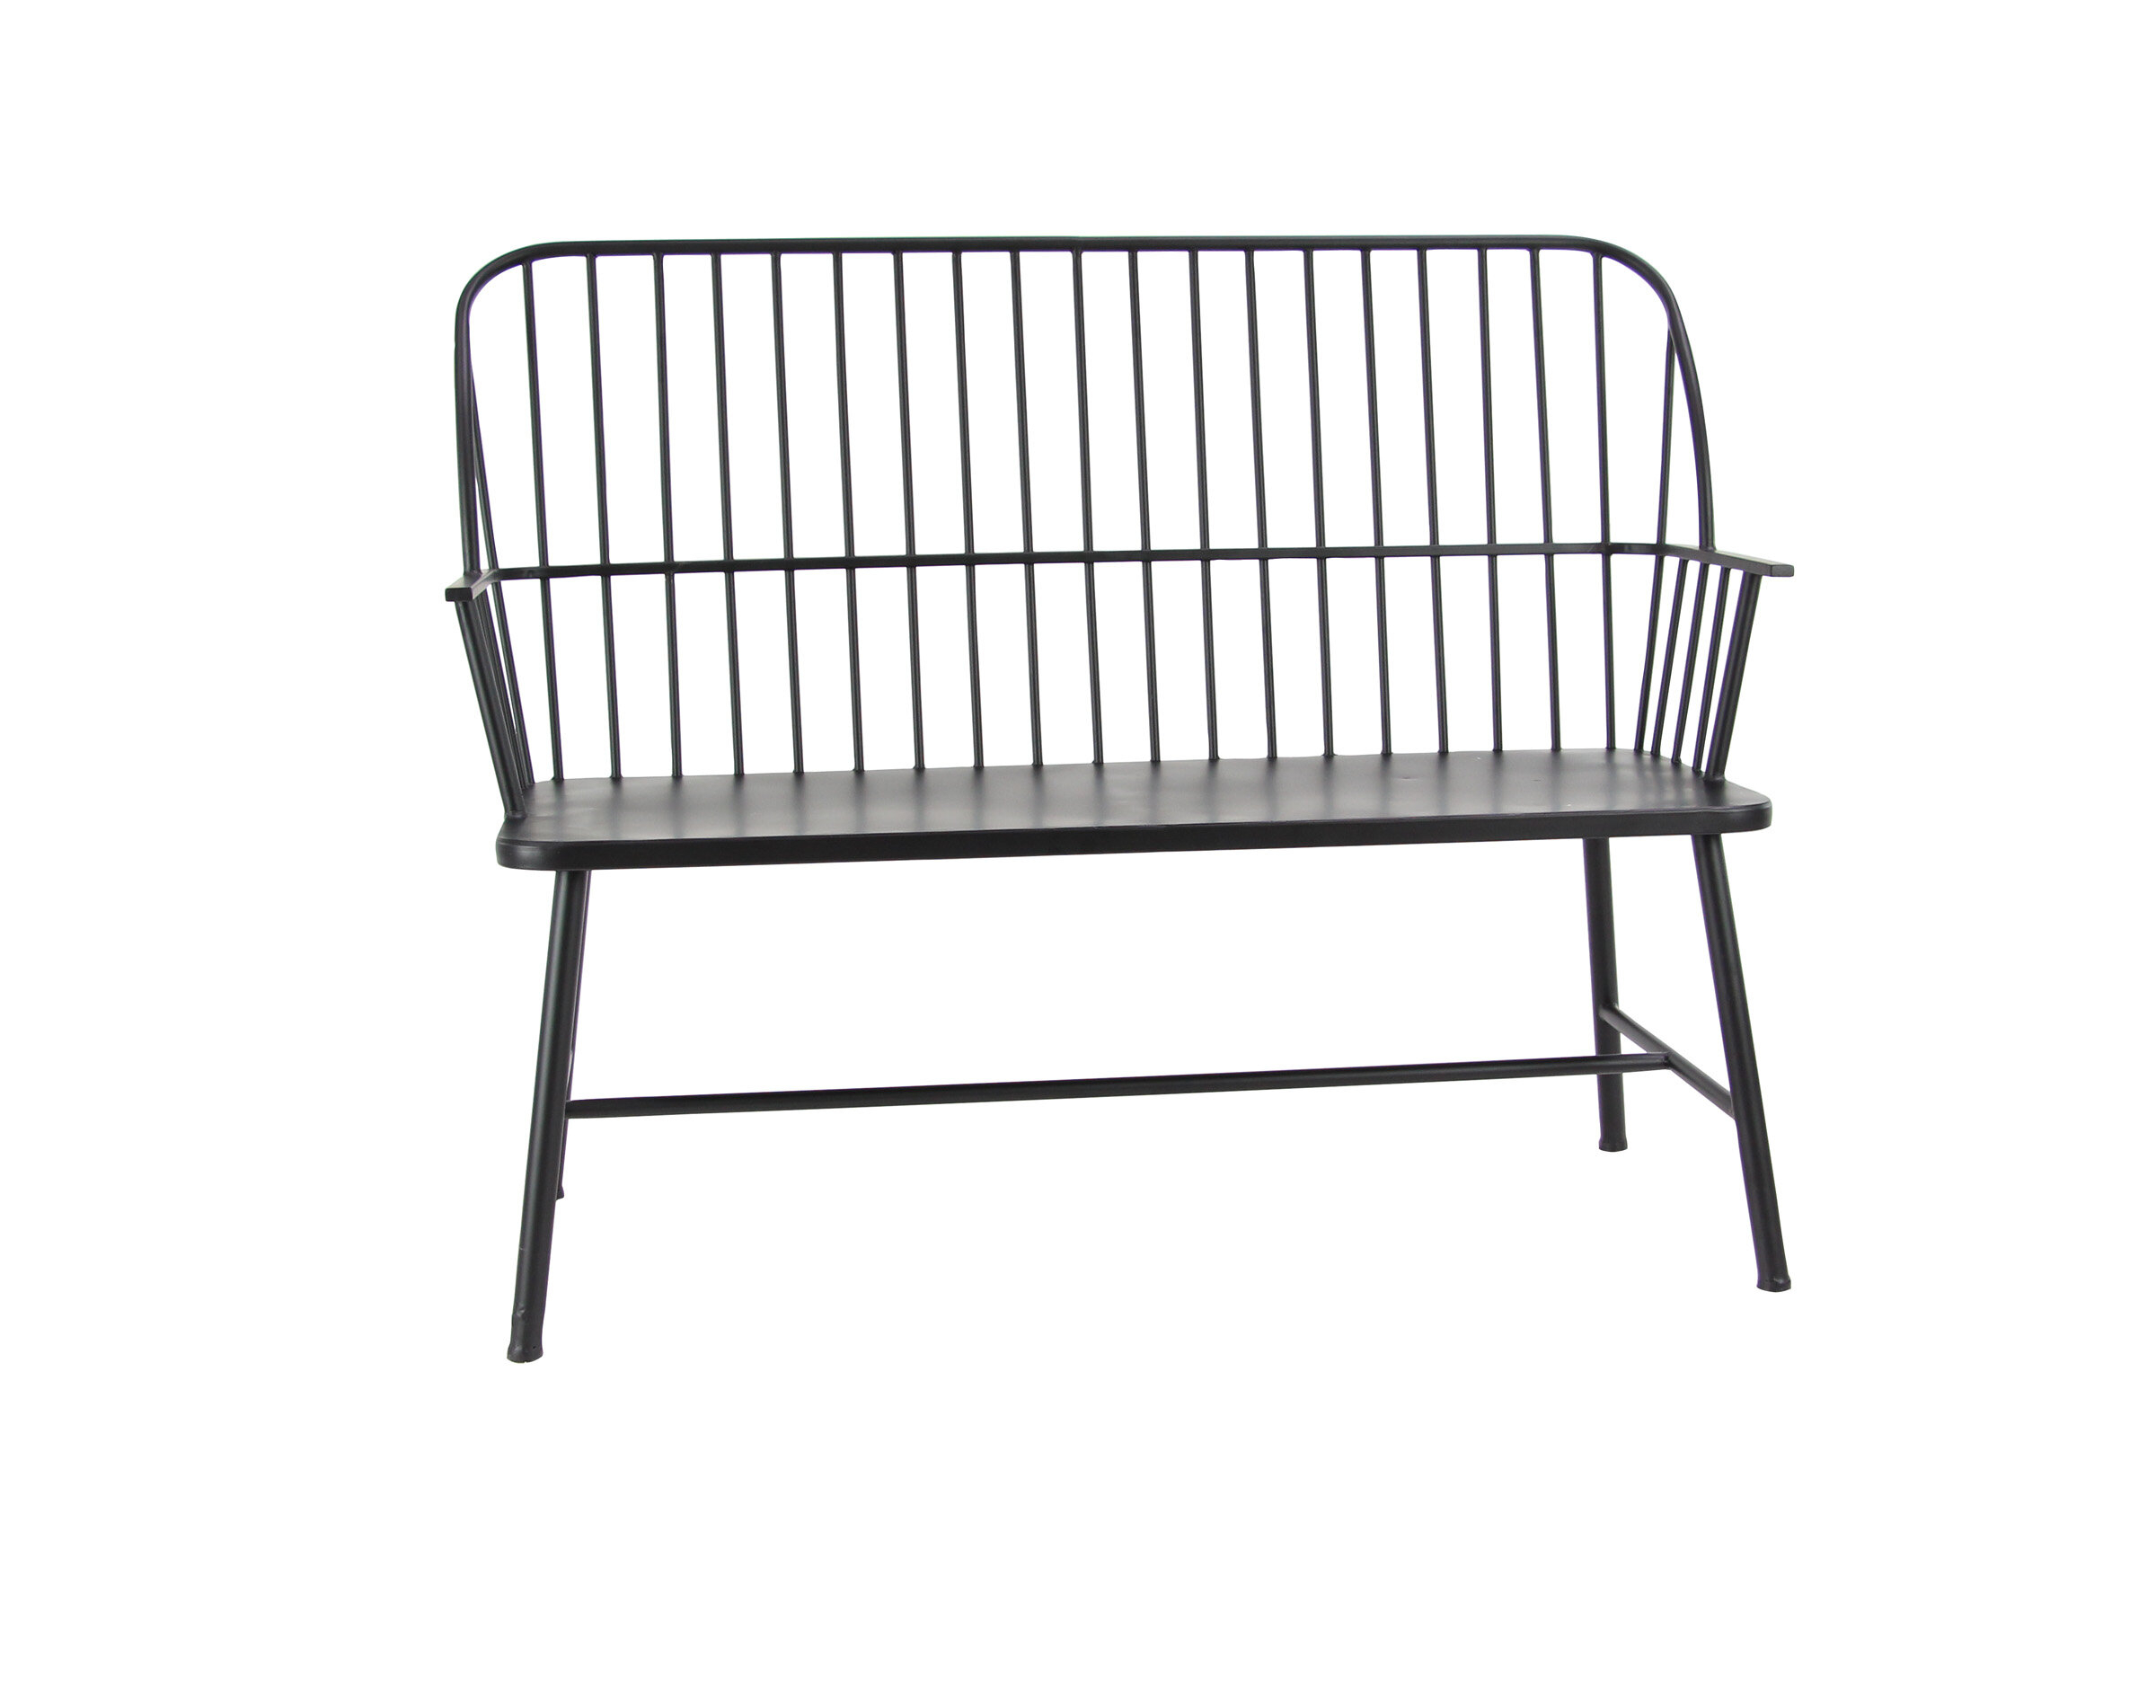 Black Garden Outdoor Benches You'Ll Love In 2020 | Wayfair Intended For Strasburg Blossoming Decorative Iron Garden Benches (View 16 of 25)